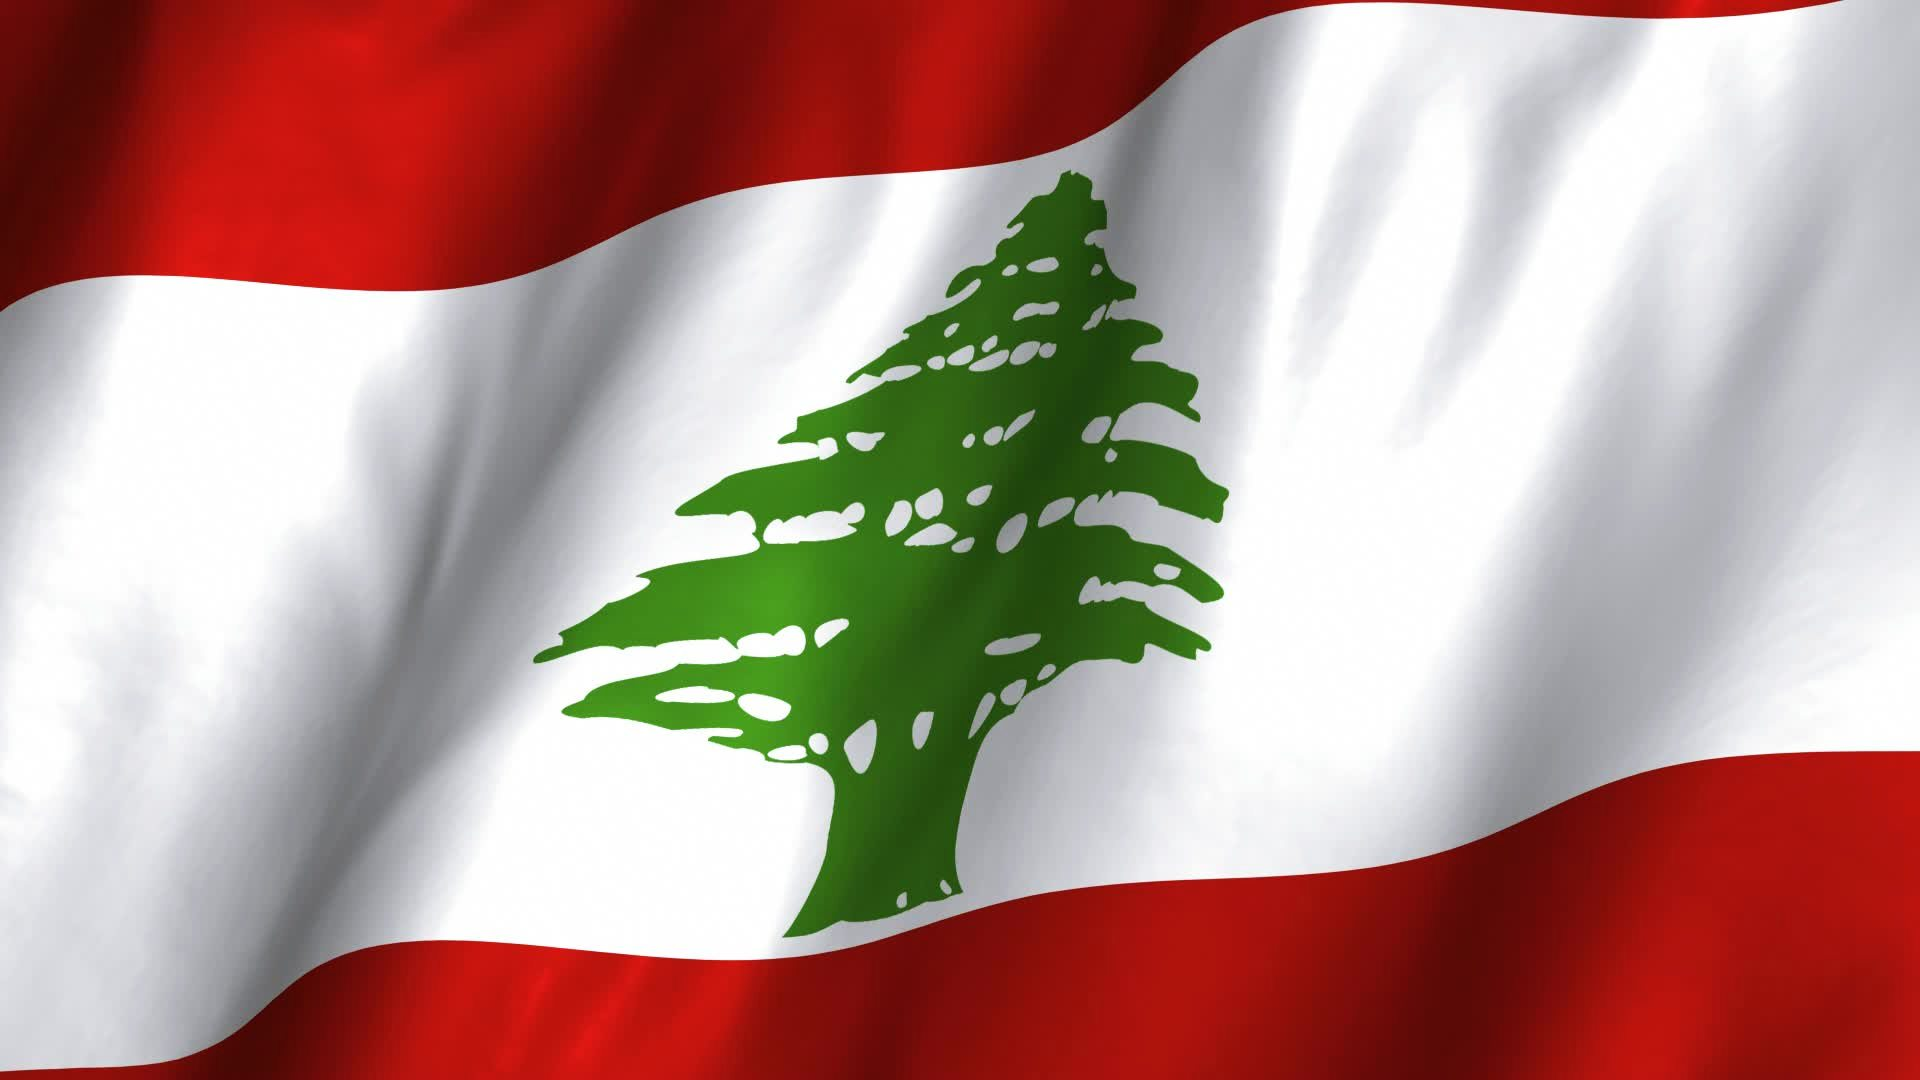 27272030 Adorable Lebanon Images HDQ, 1920x1080 px